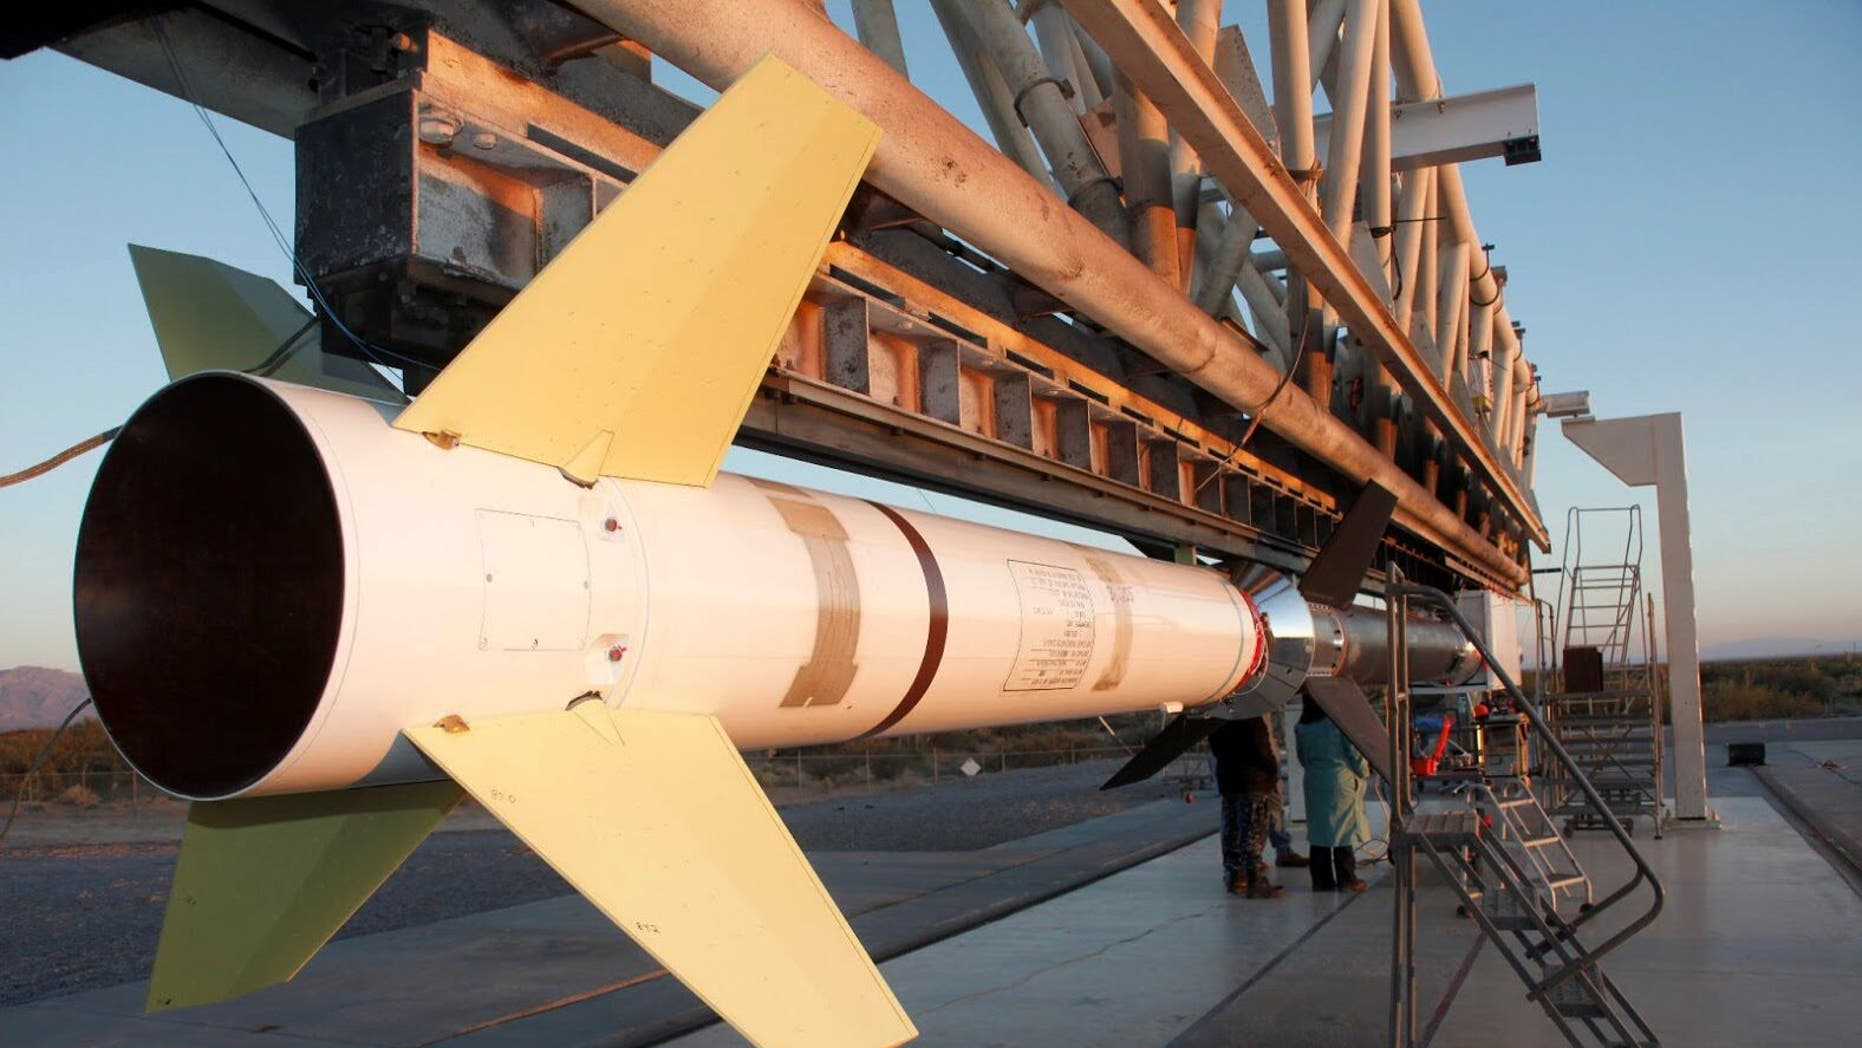 The sounding rocket carrying the first flight of FOXSI, an instrument gathering X-ray data about the sun, before its launch in 2012.